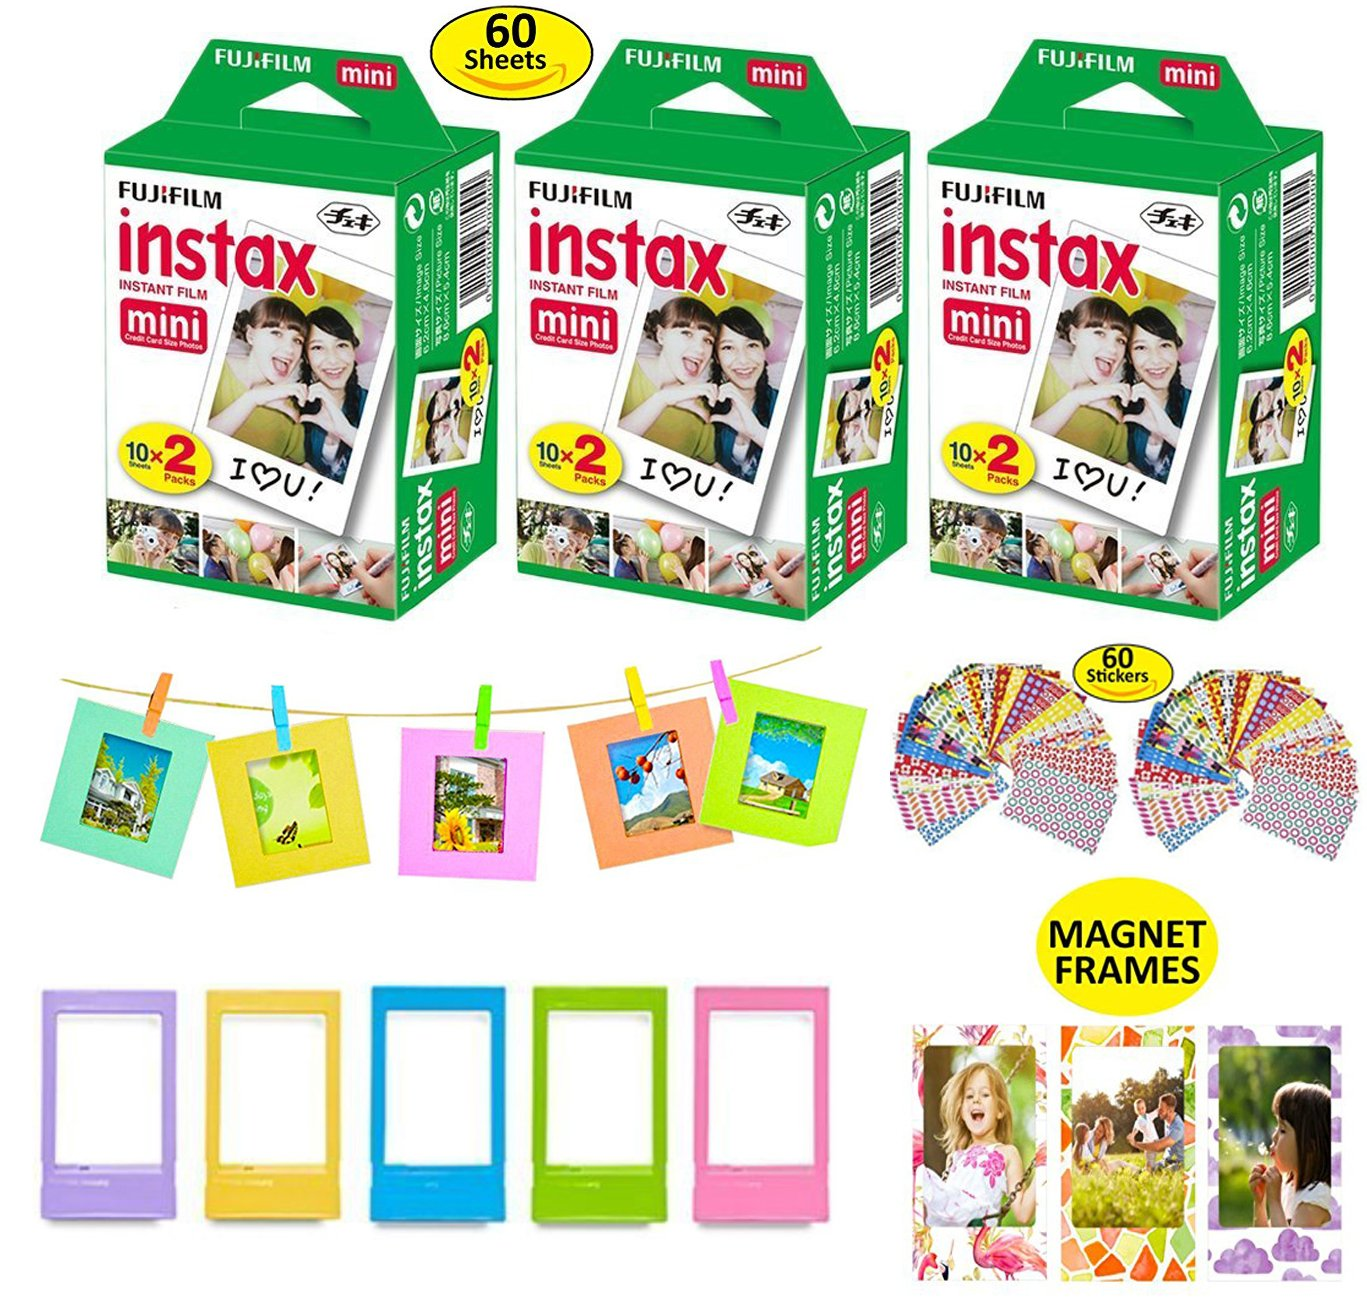 Fujifilm Instax Mini Instant Film, 3 Twin Packs (60 Total Pictures) + 5 Picture Frames + 3 Magnet Frames + 10 Paper Frames + 60 Sticker Frames.